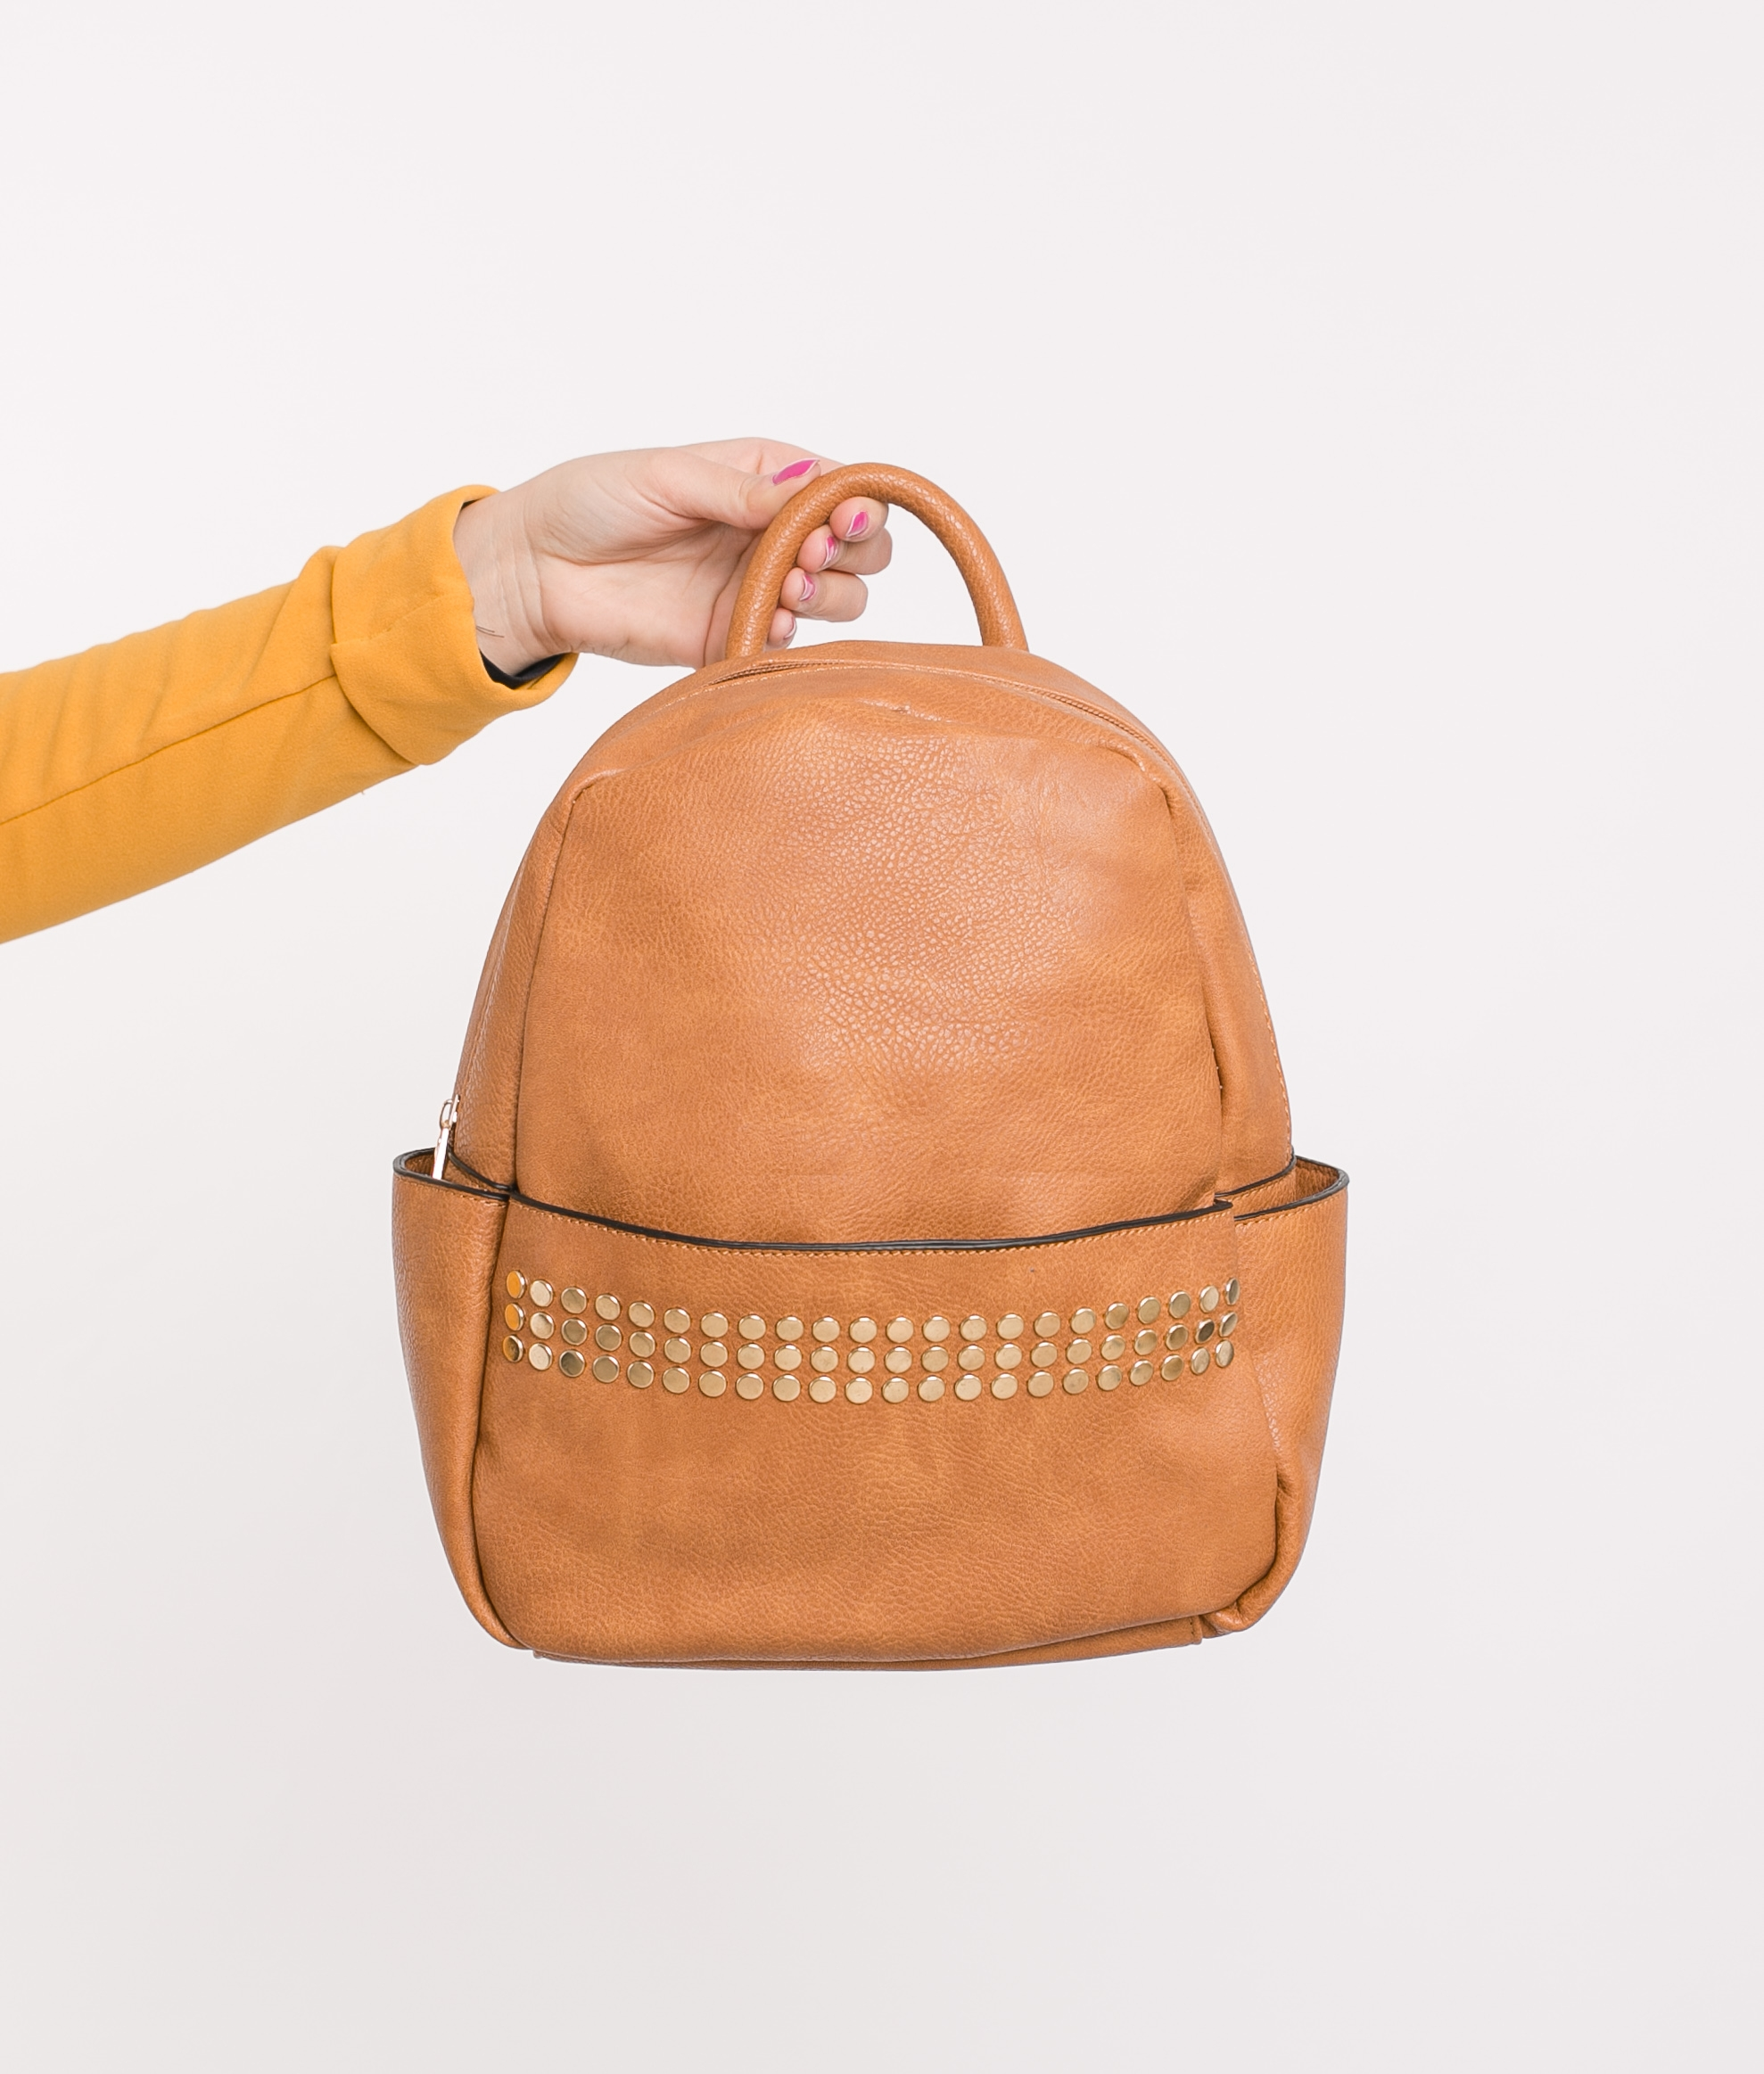 Backpack Zulaida - Beige